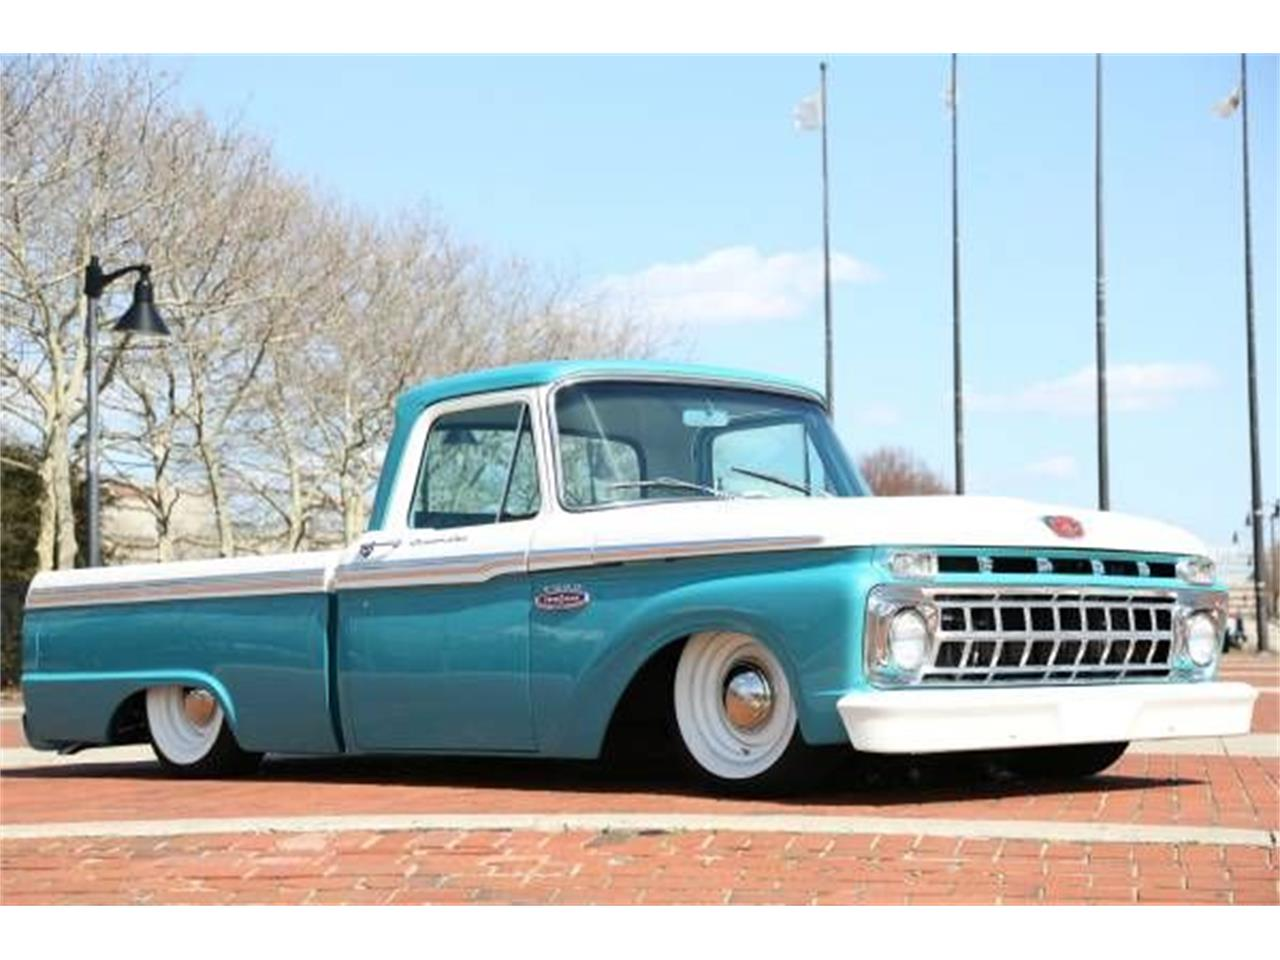 Large picture of 65 f100 o4uo